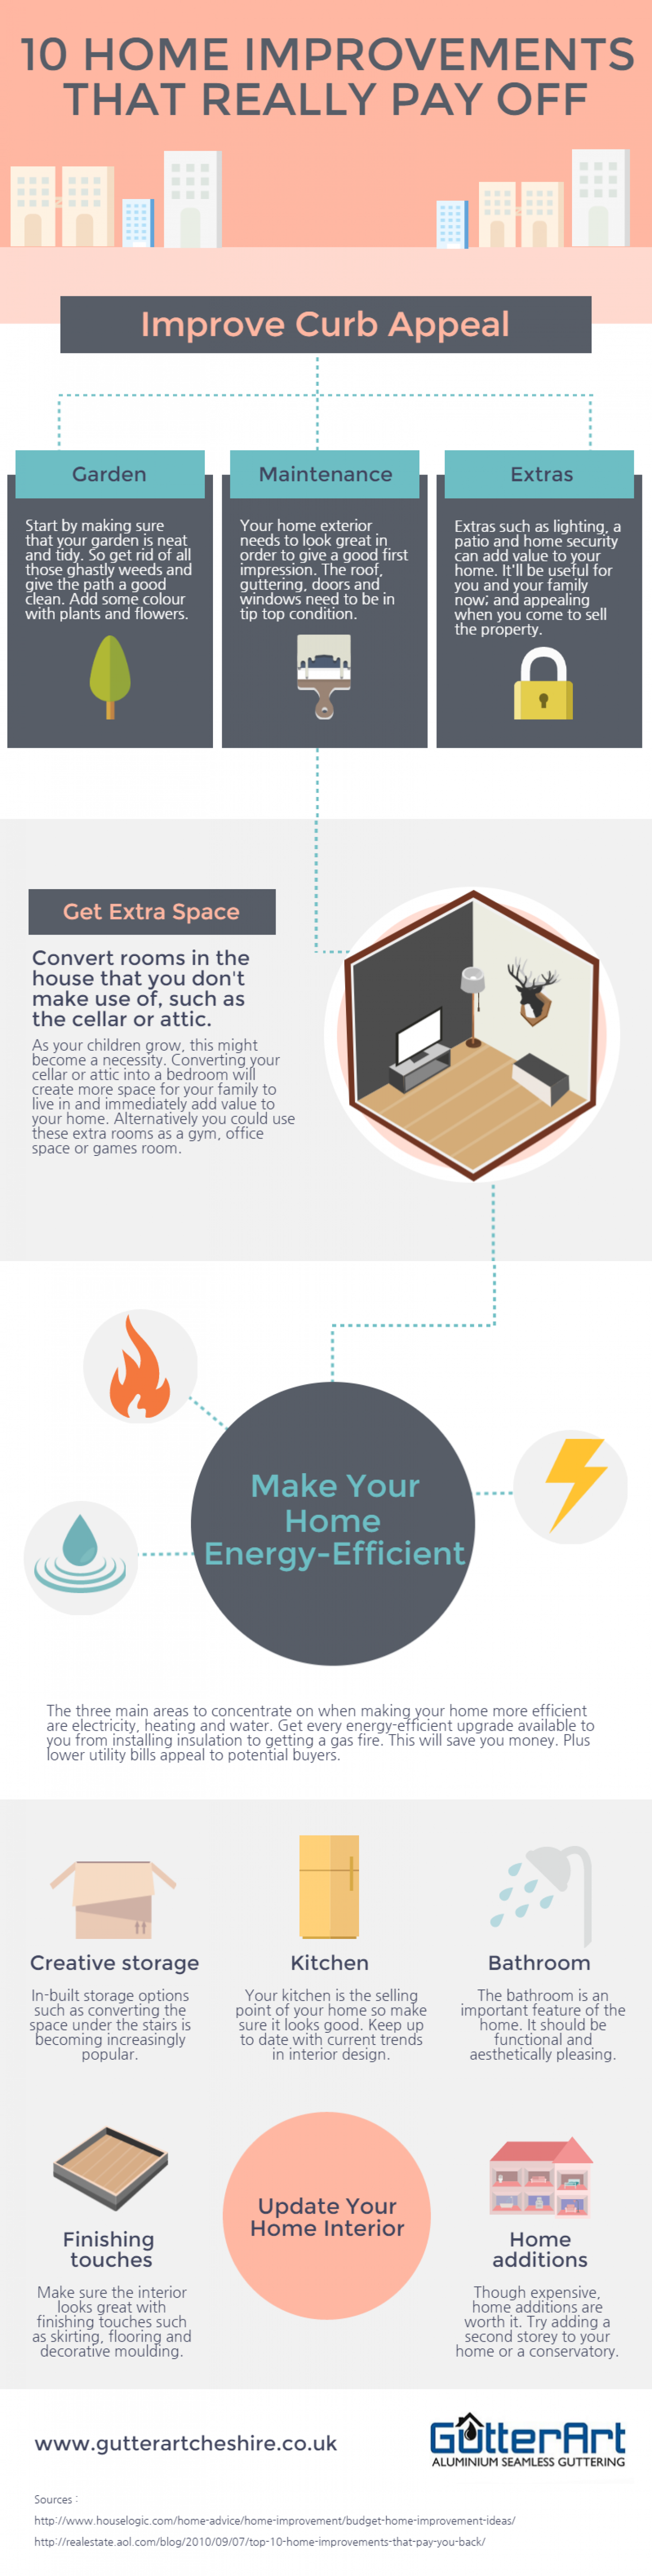 10 Home Improvements That Really Pay Off Infographic